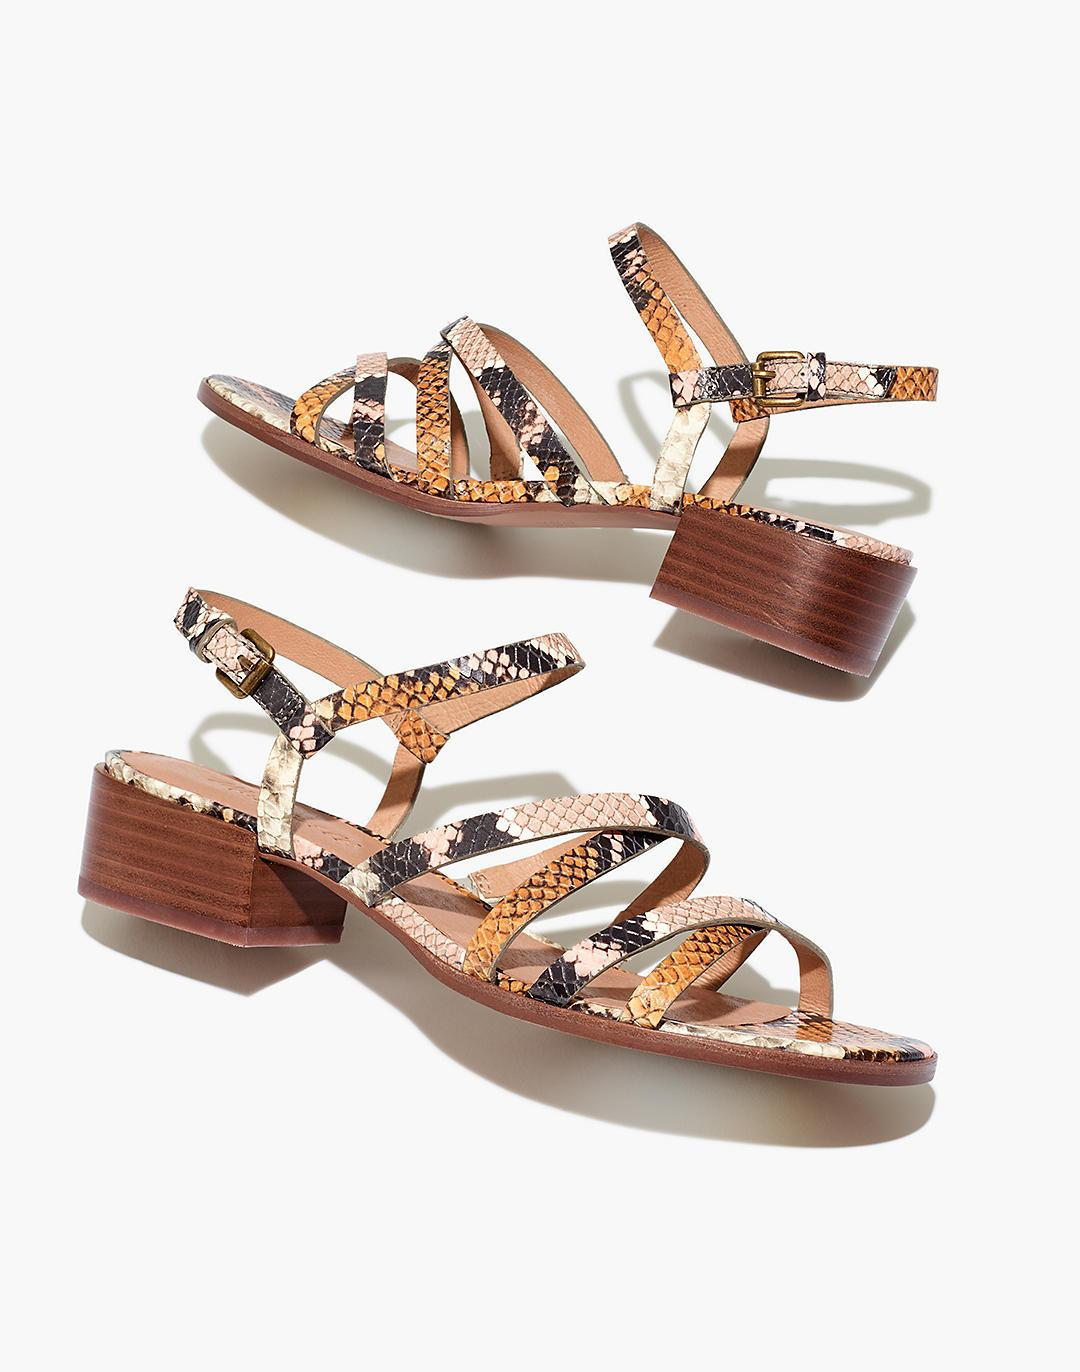 The Lori Sandal in Snake Embossed Leather